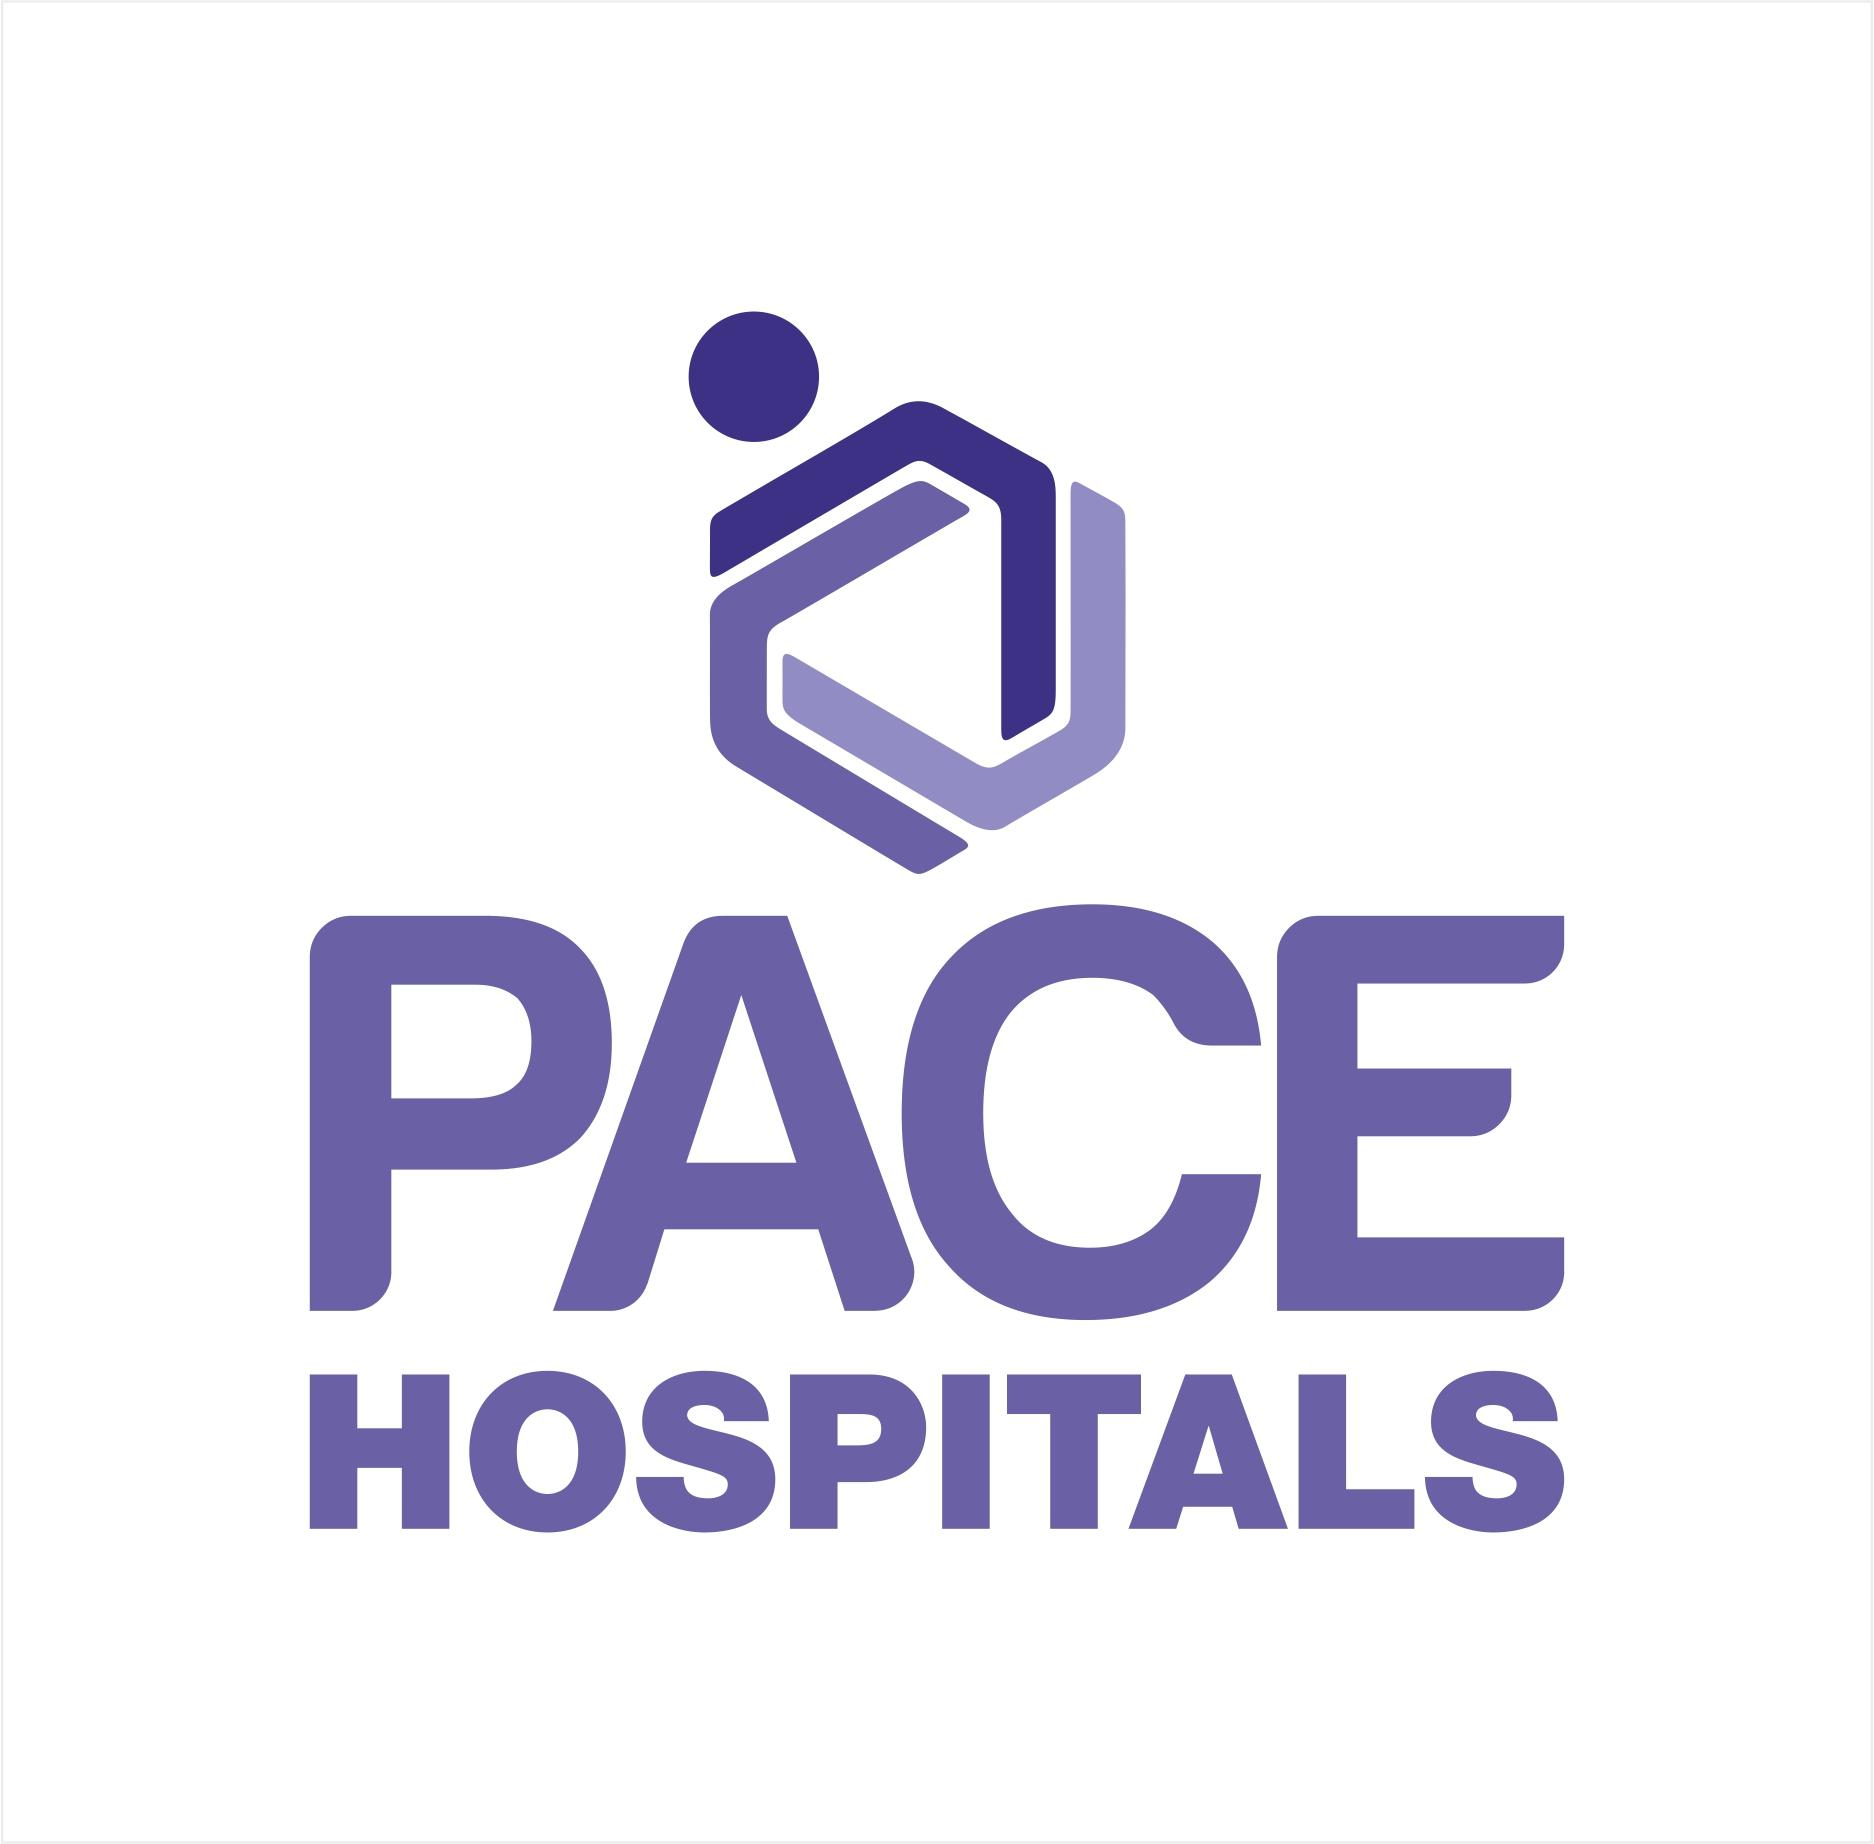 Pace Hospital